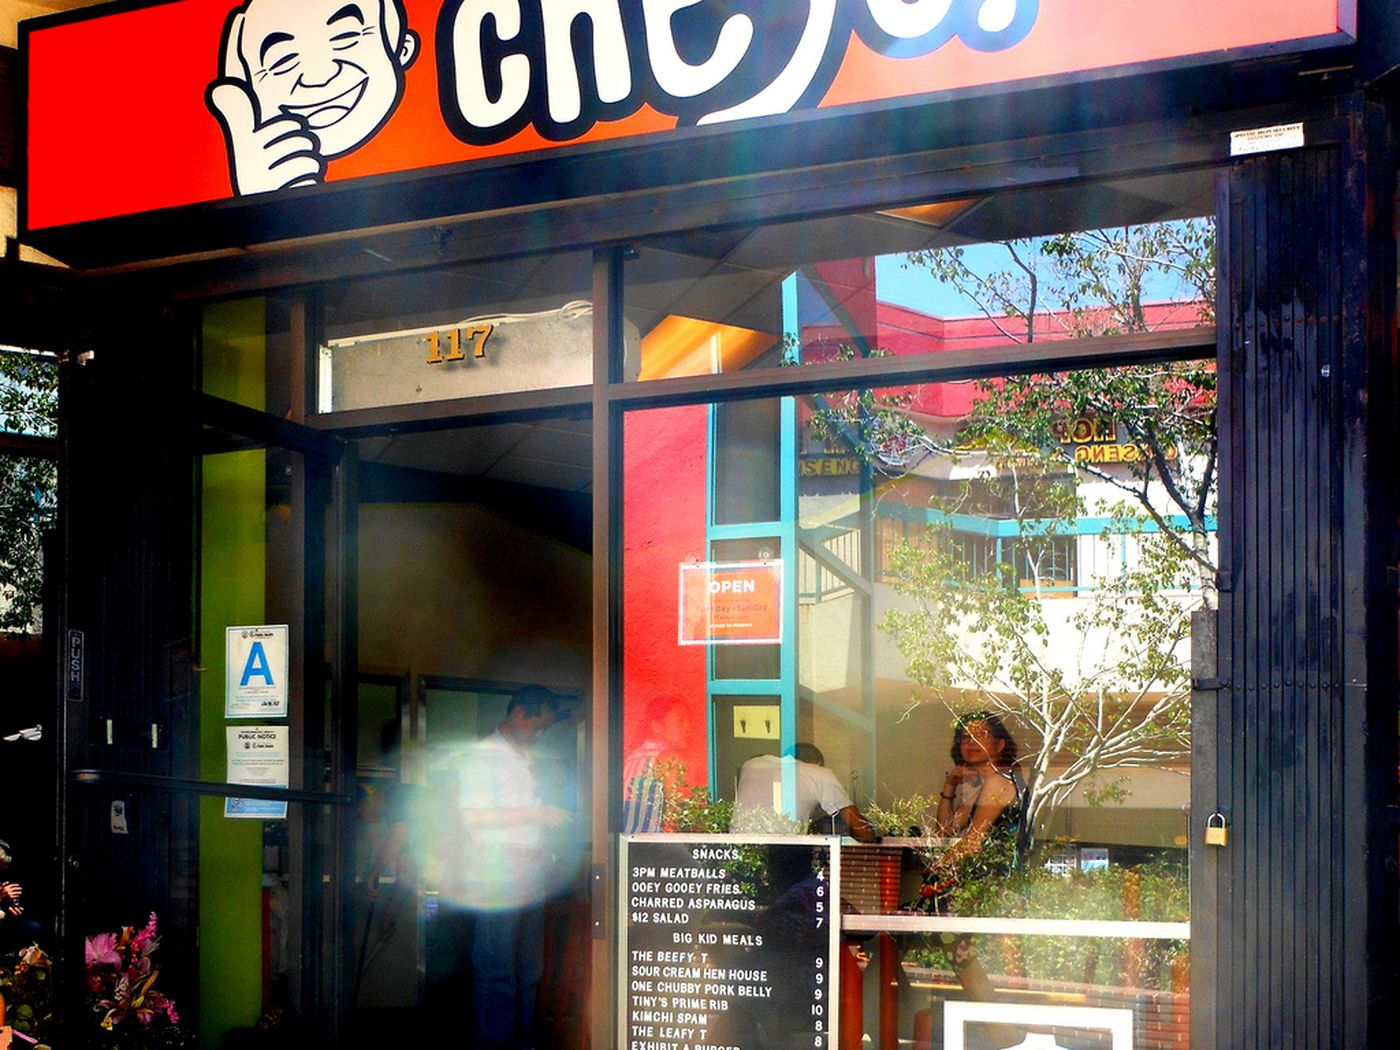 Roy Choi Upgrades Chego's Menu Just as Burritos Have Their